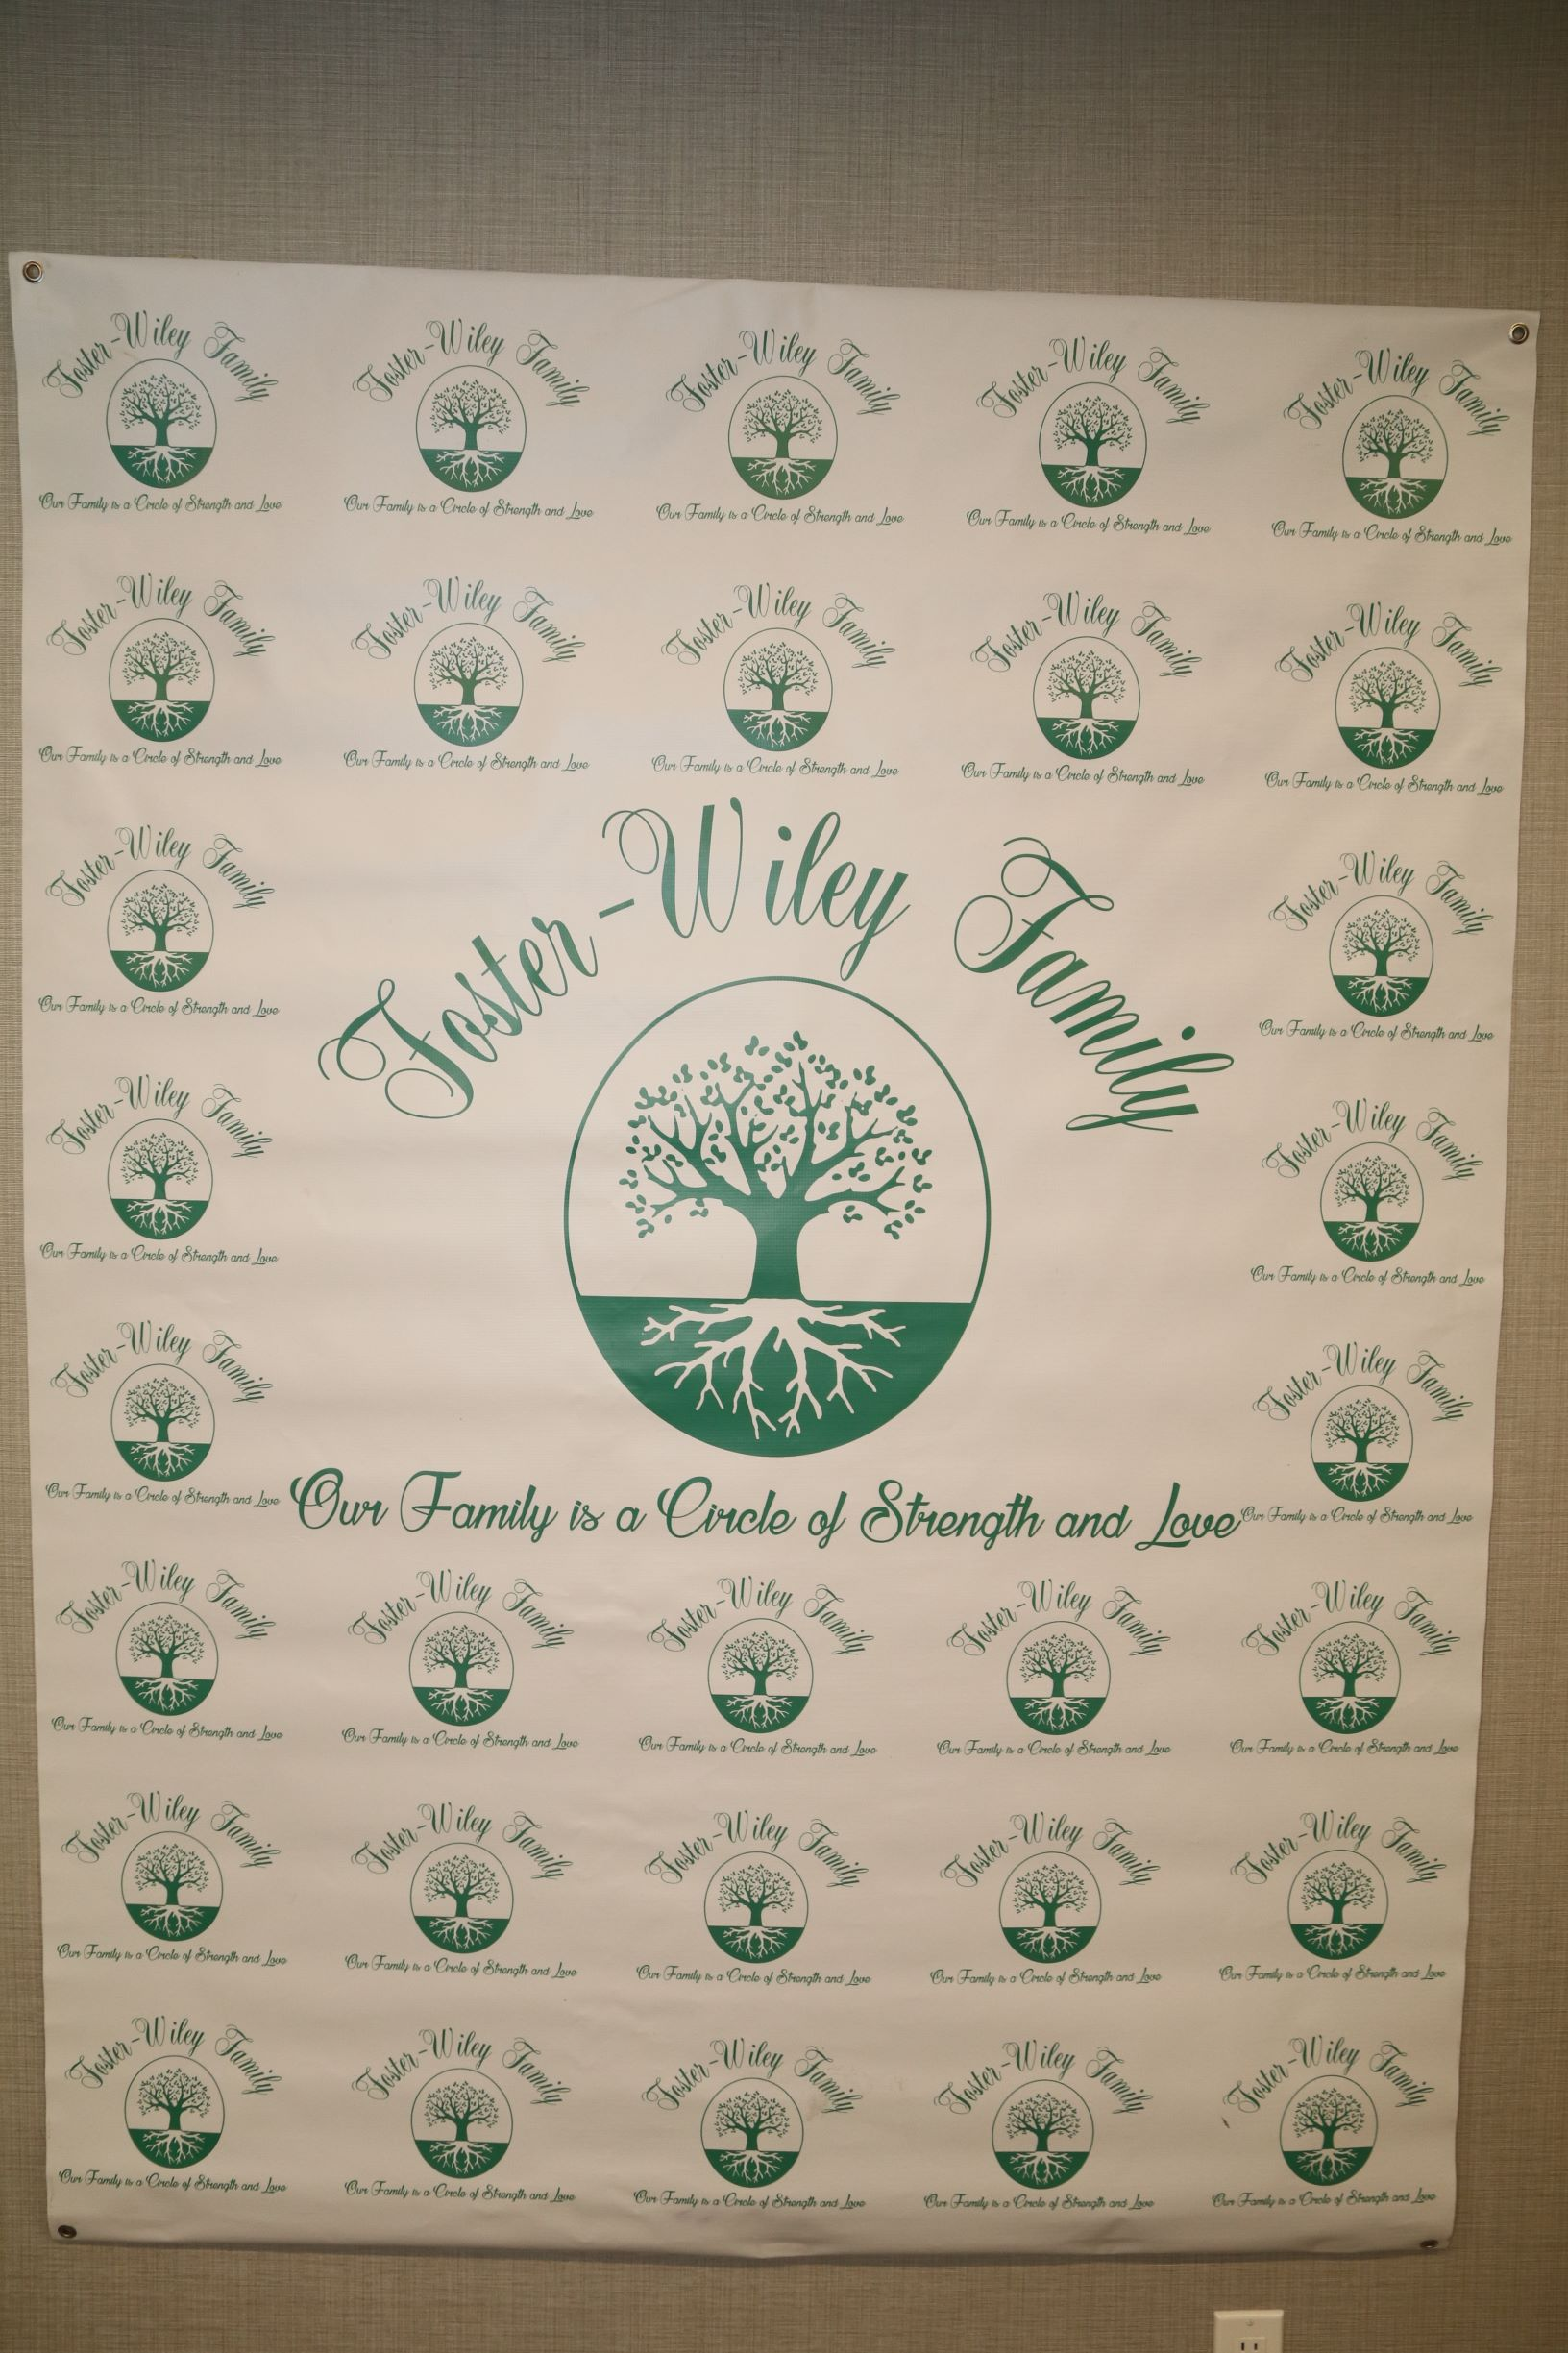 Foster-Wiley Family  Banner